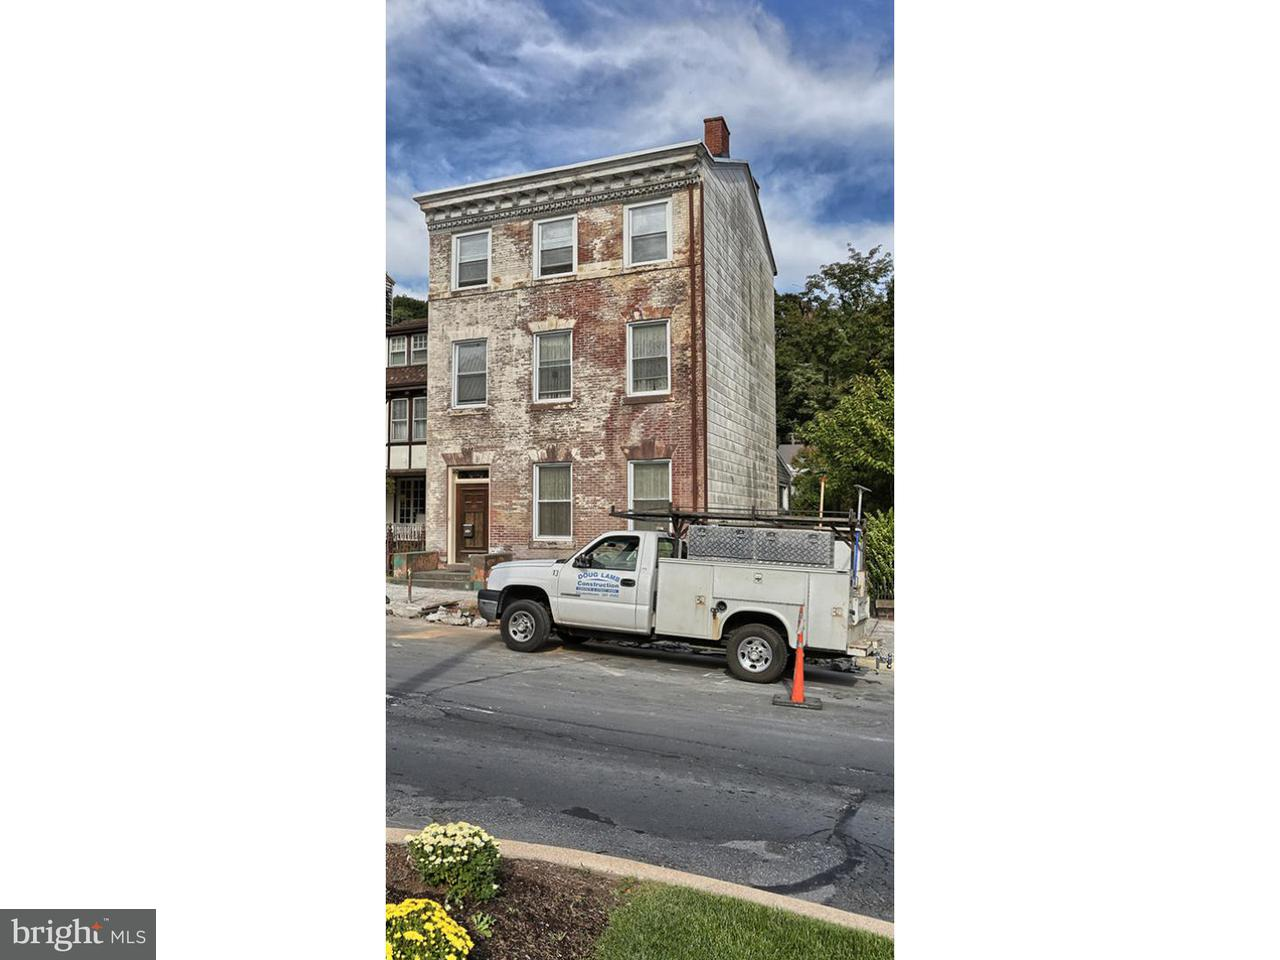 Single Family Home for Rent at 508 W MARKET ST #REAR Pottsville, Pennsylvania 17901 United States